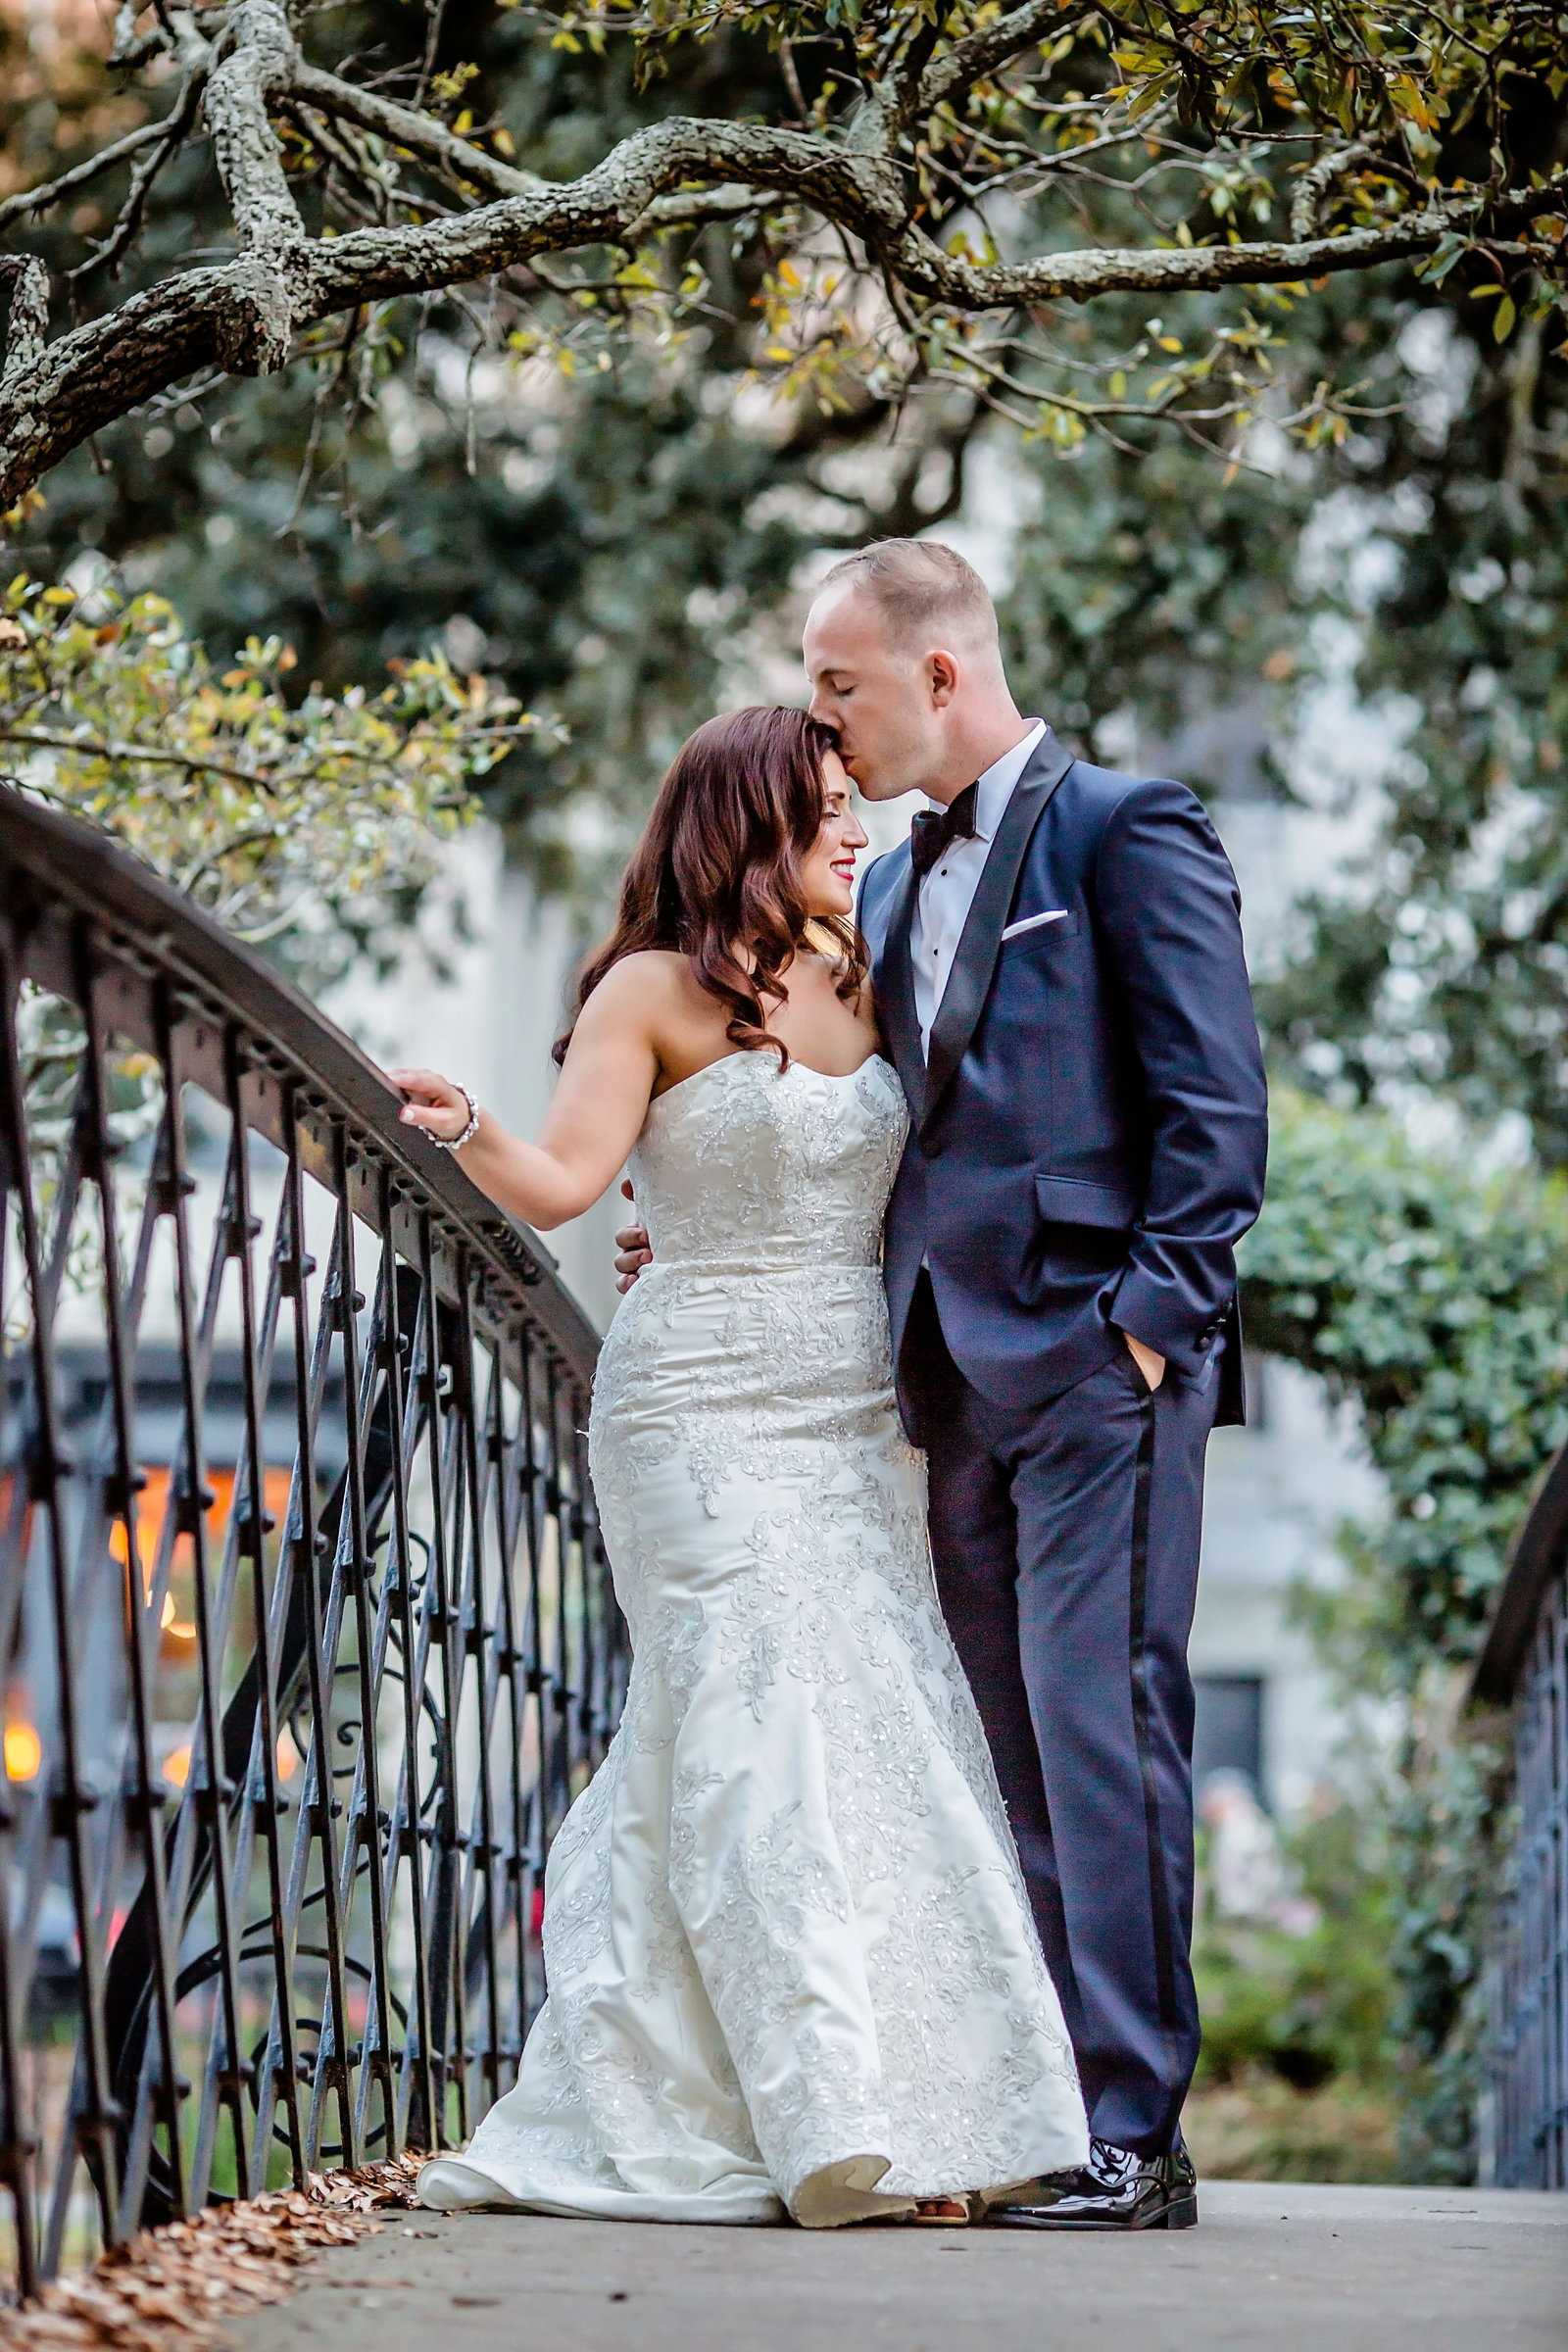 Tiffany & Josh, Savannah Wedding, Bobbi Brinkman Photography